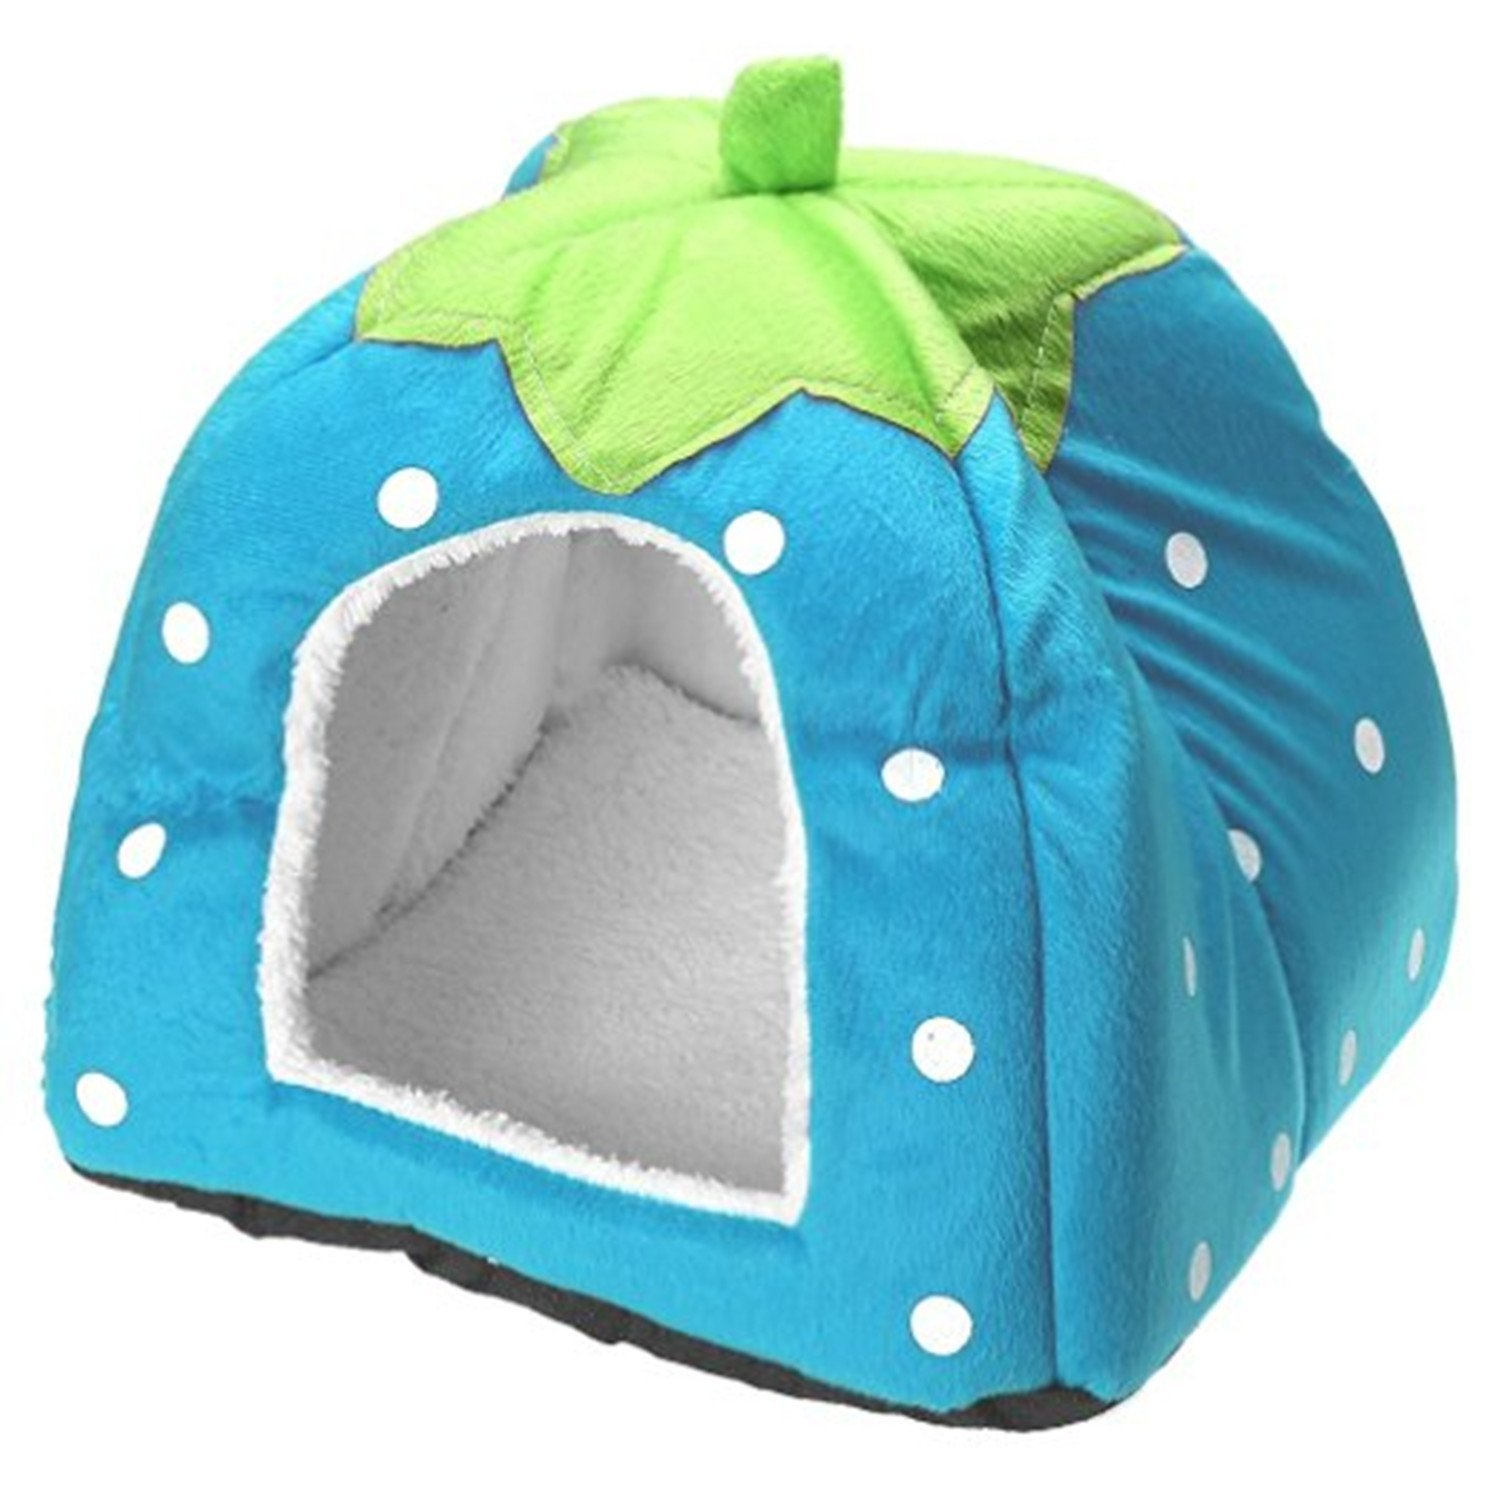 Century Star Rabbit Dog Cat Pet Bed Small Big Animal Snuggle Puppy Supplies Indoor Beds House Blue L by Century Star (Image #1)